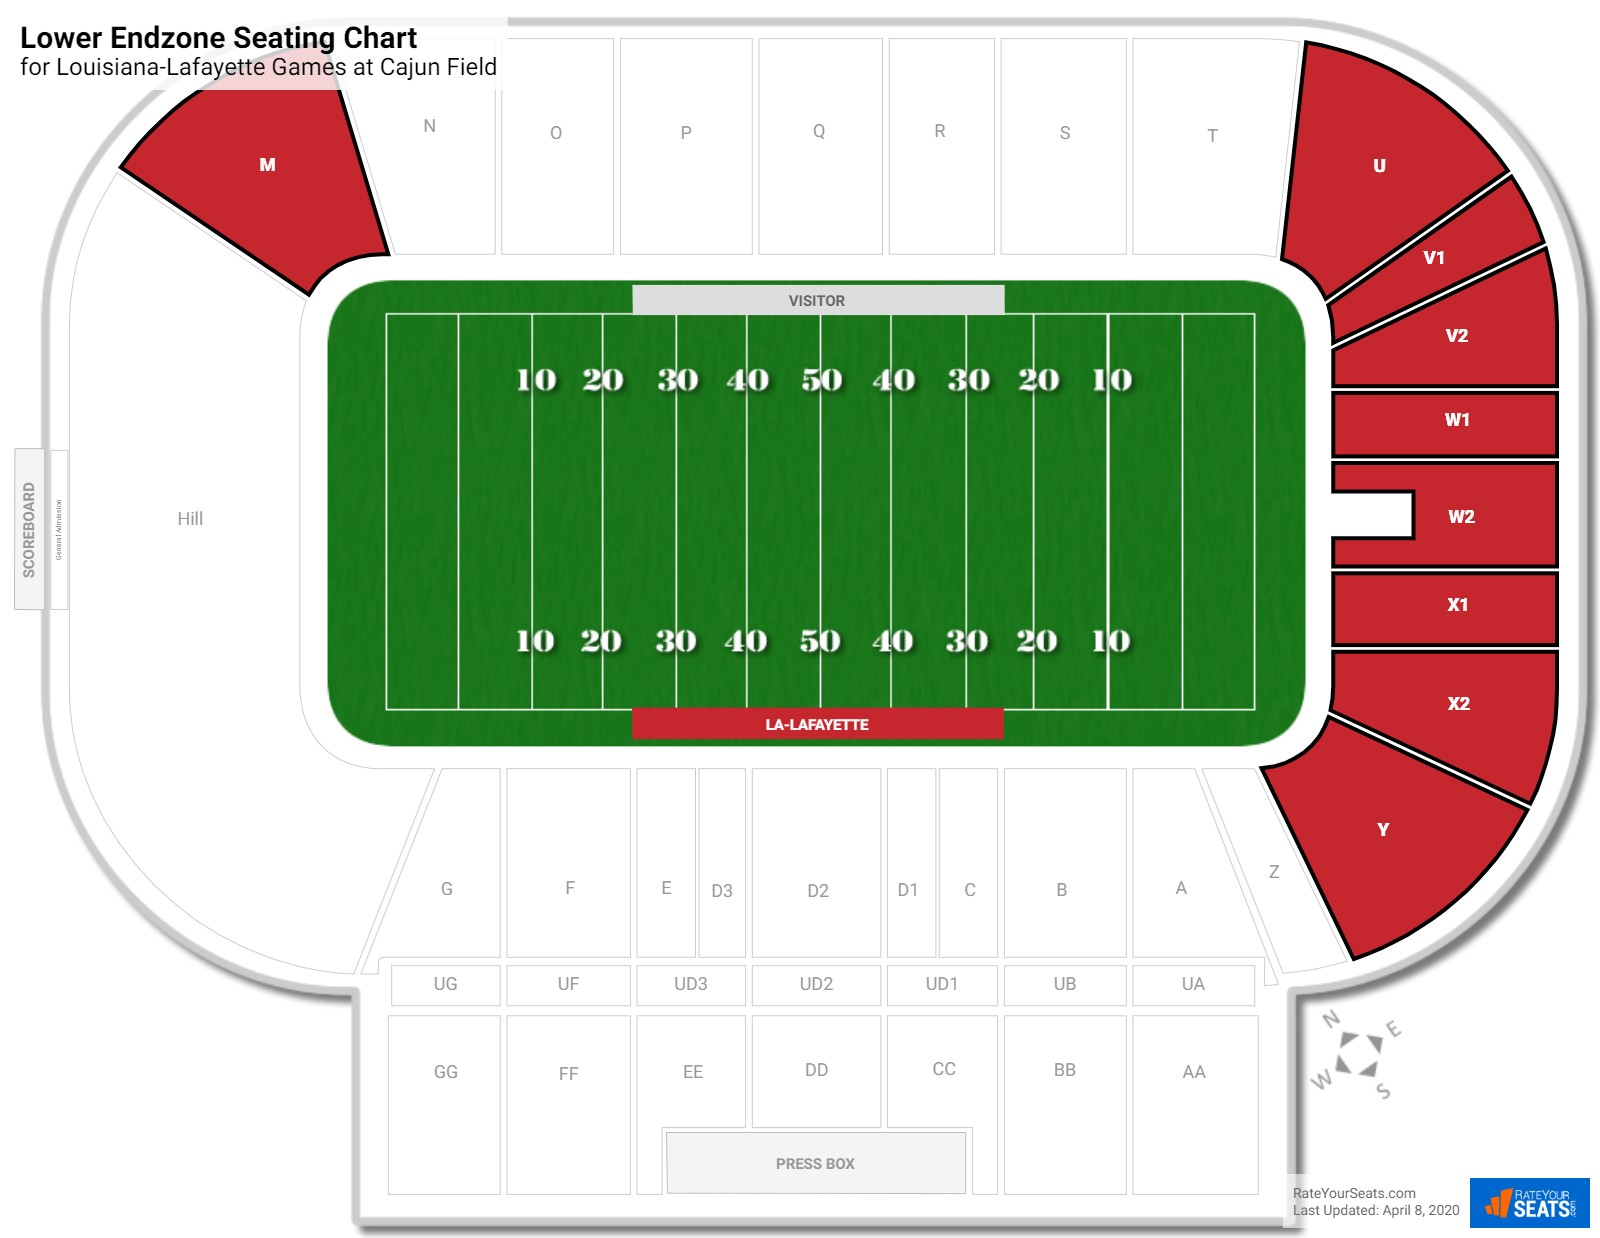 Cajun Field Lower Endzone seating chart